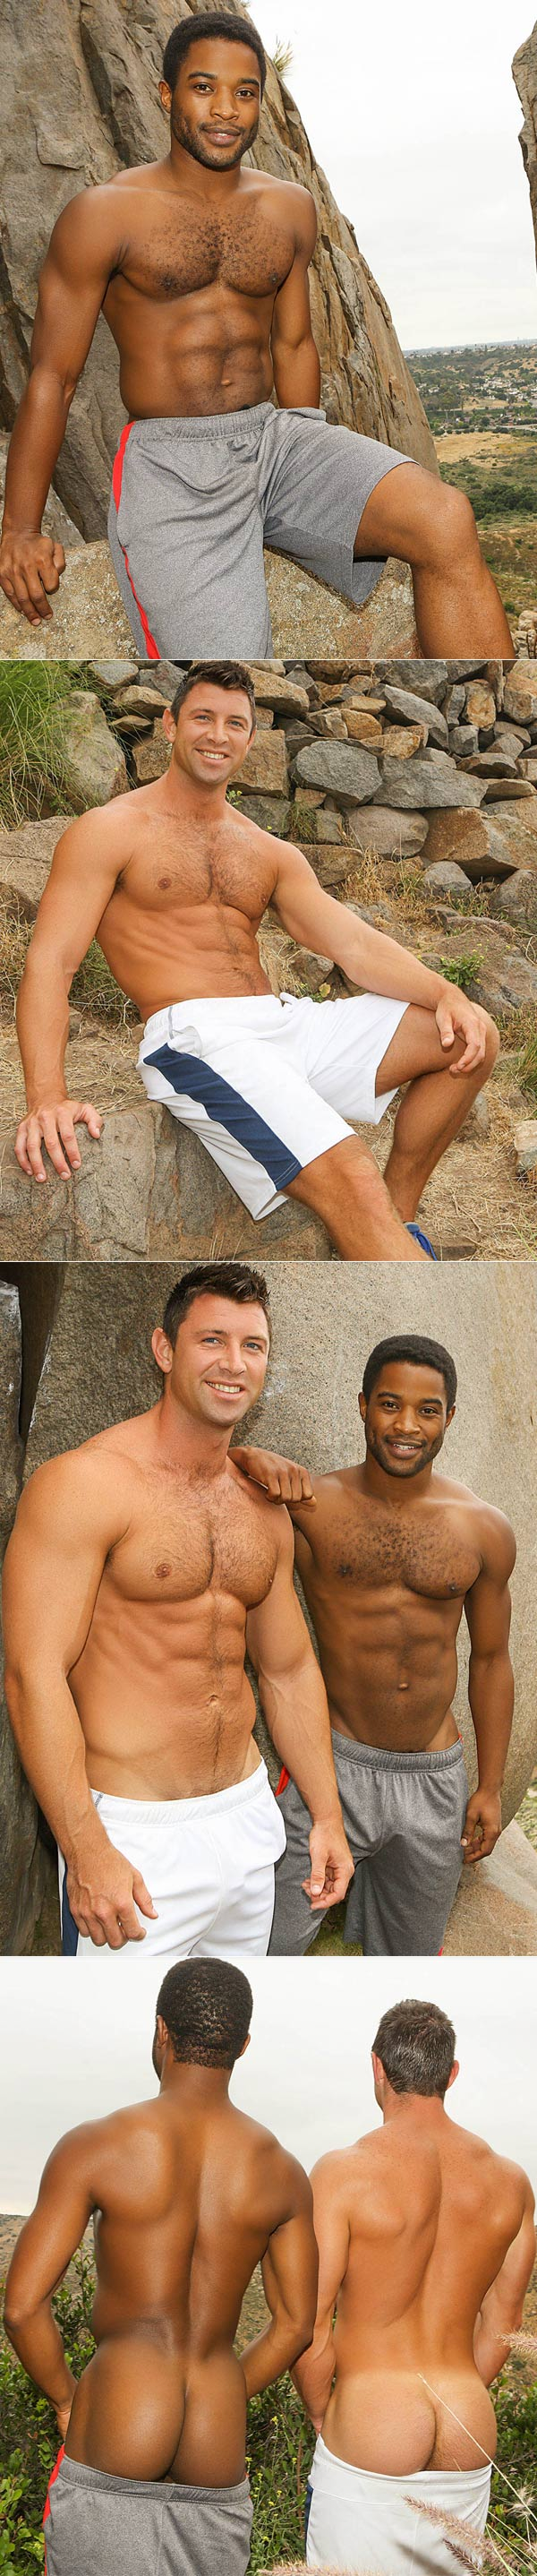 Landon Fucks Shaw (Bareback) at SeanCody